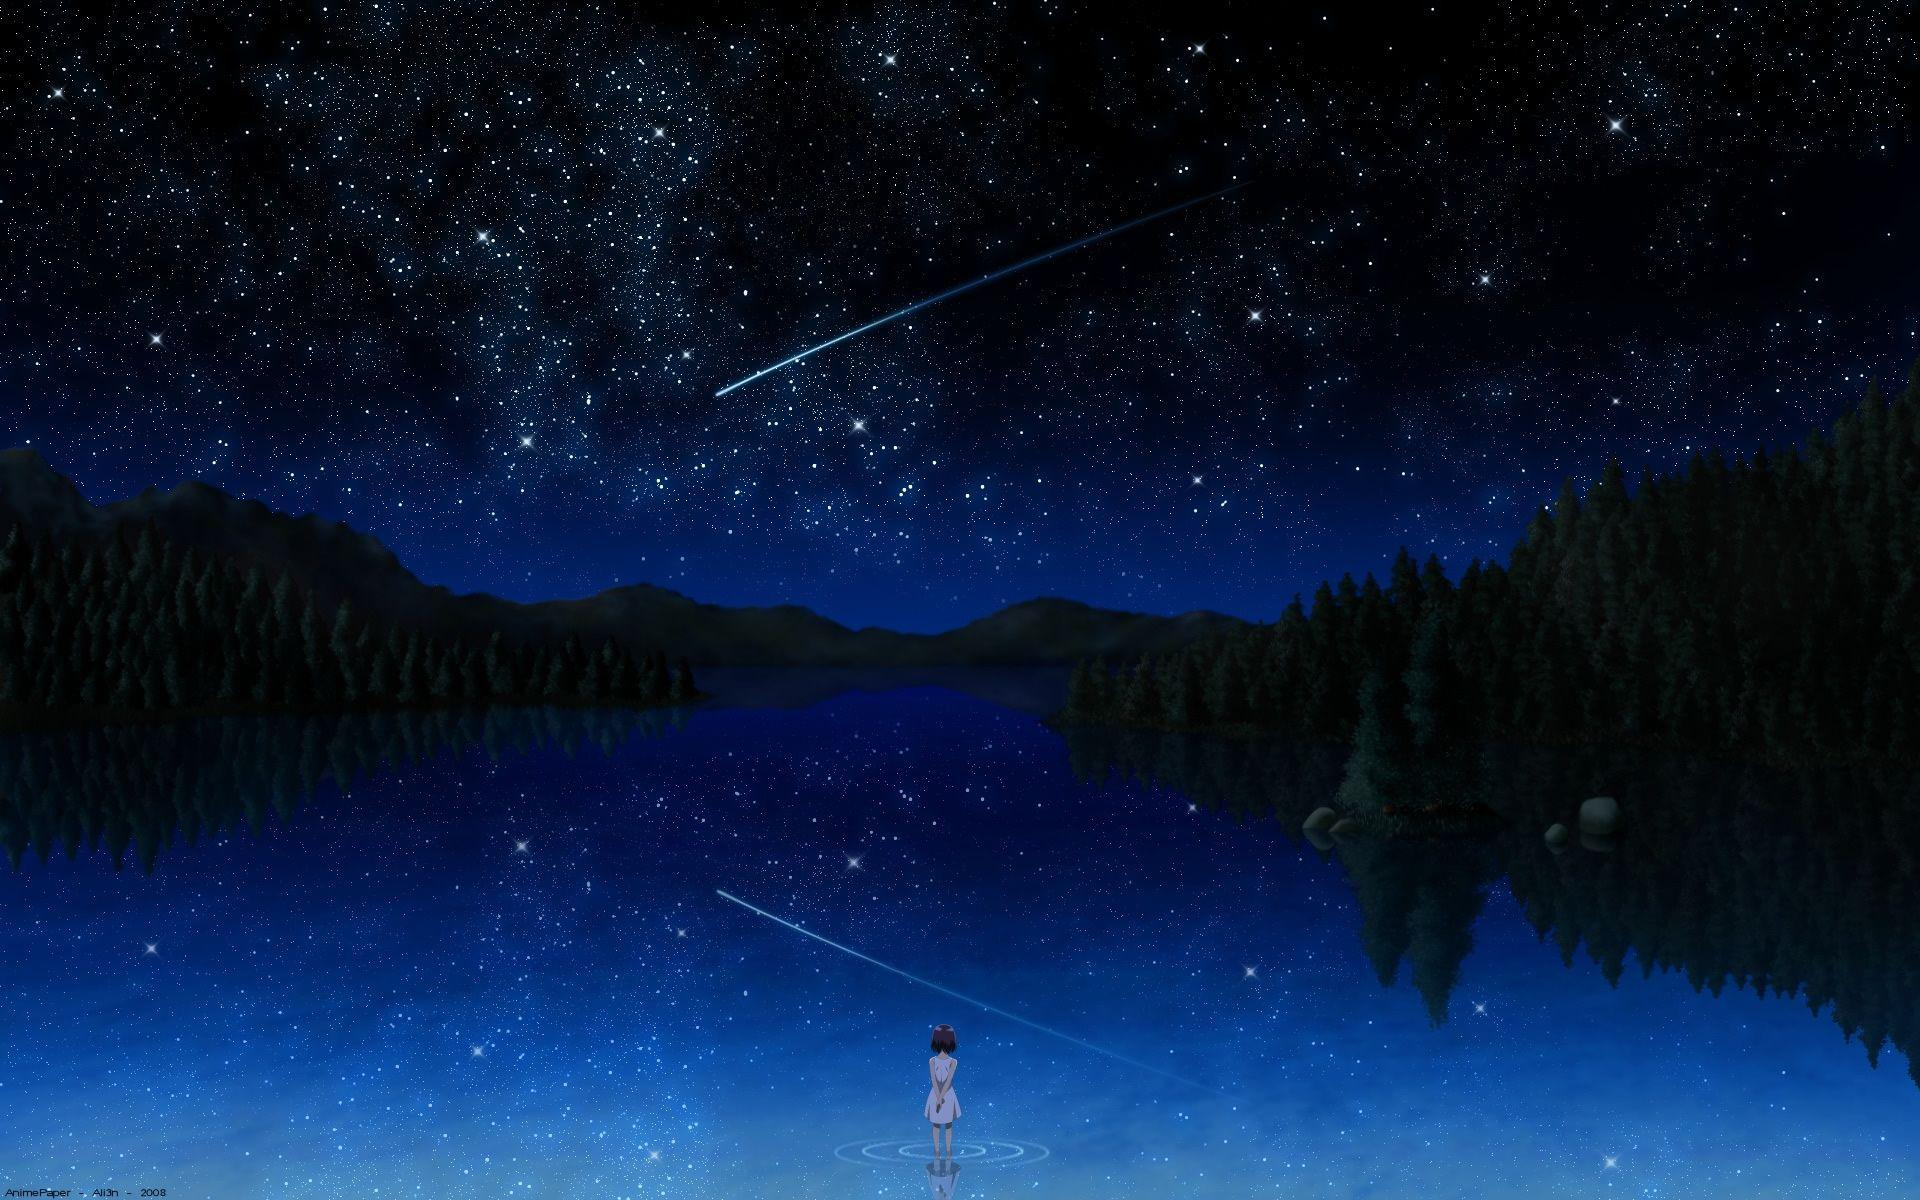 Meteor Shower Wallpapers, Good HDQ Live Meteor Shower Pics ...